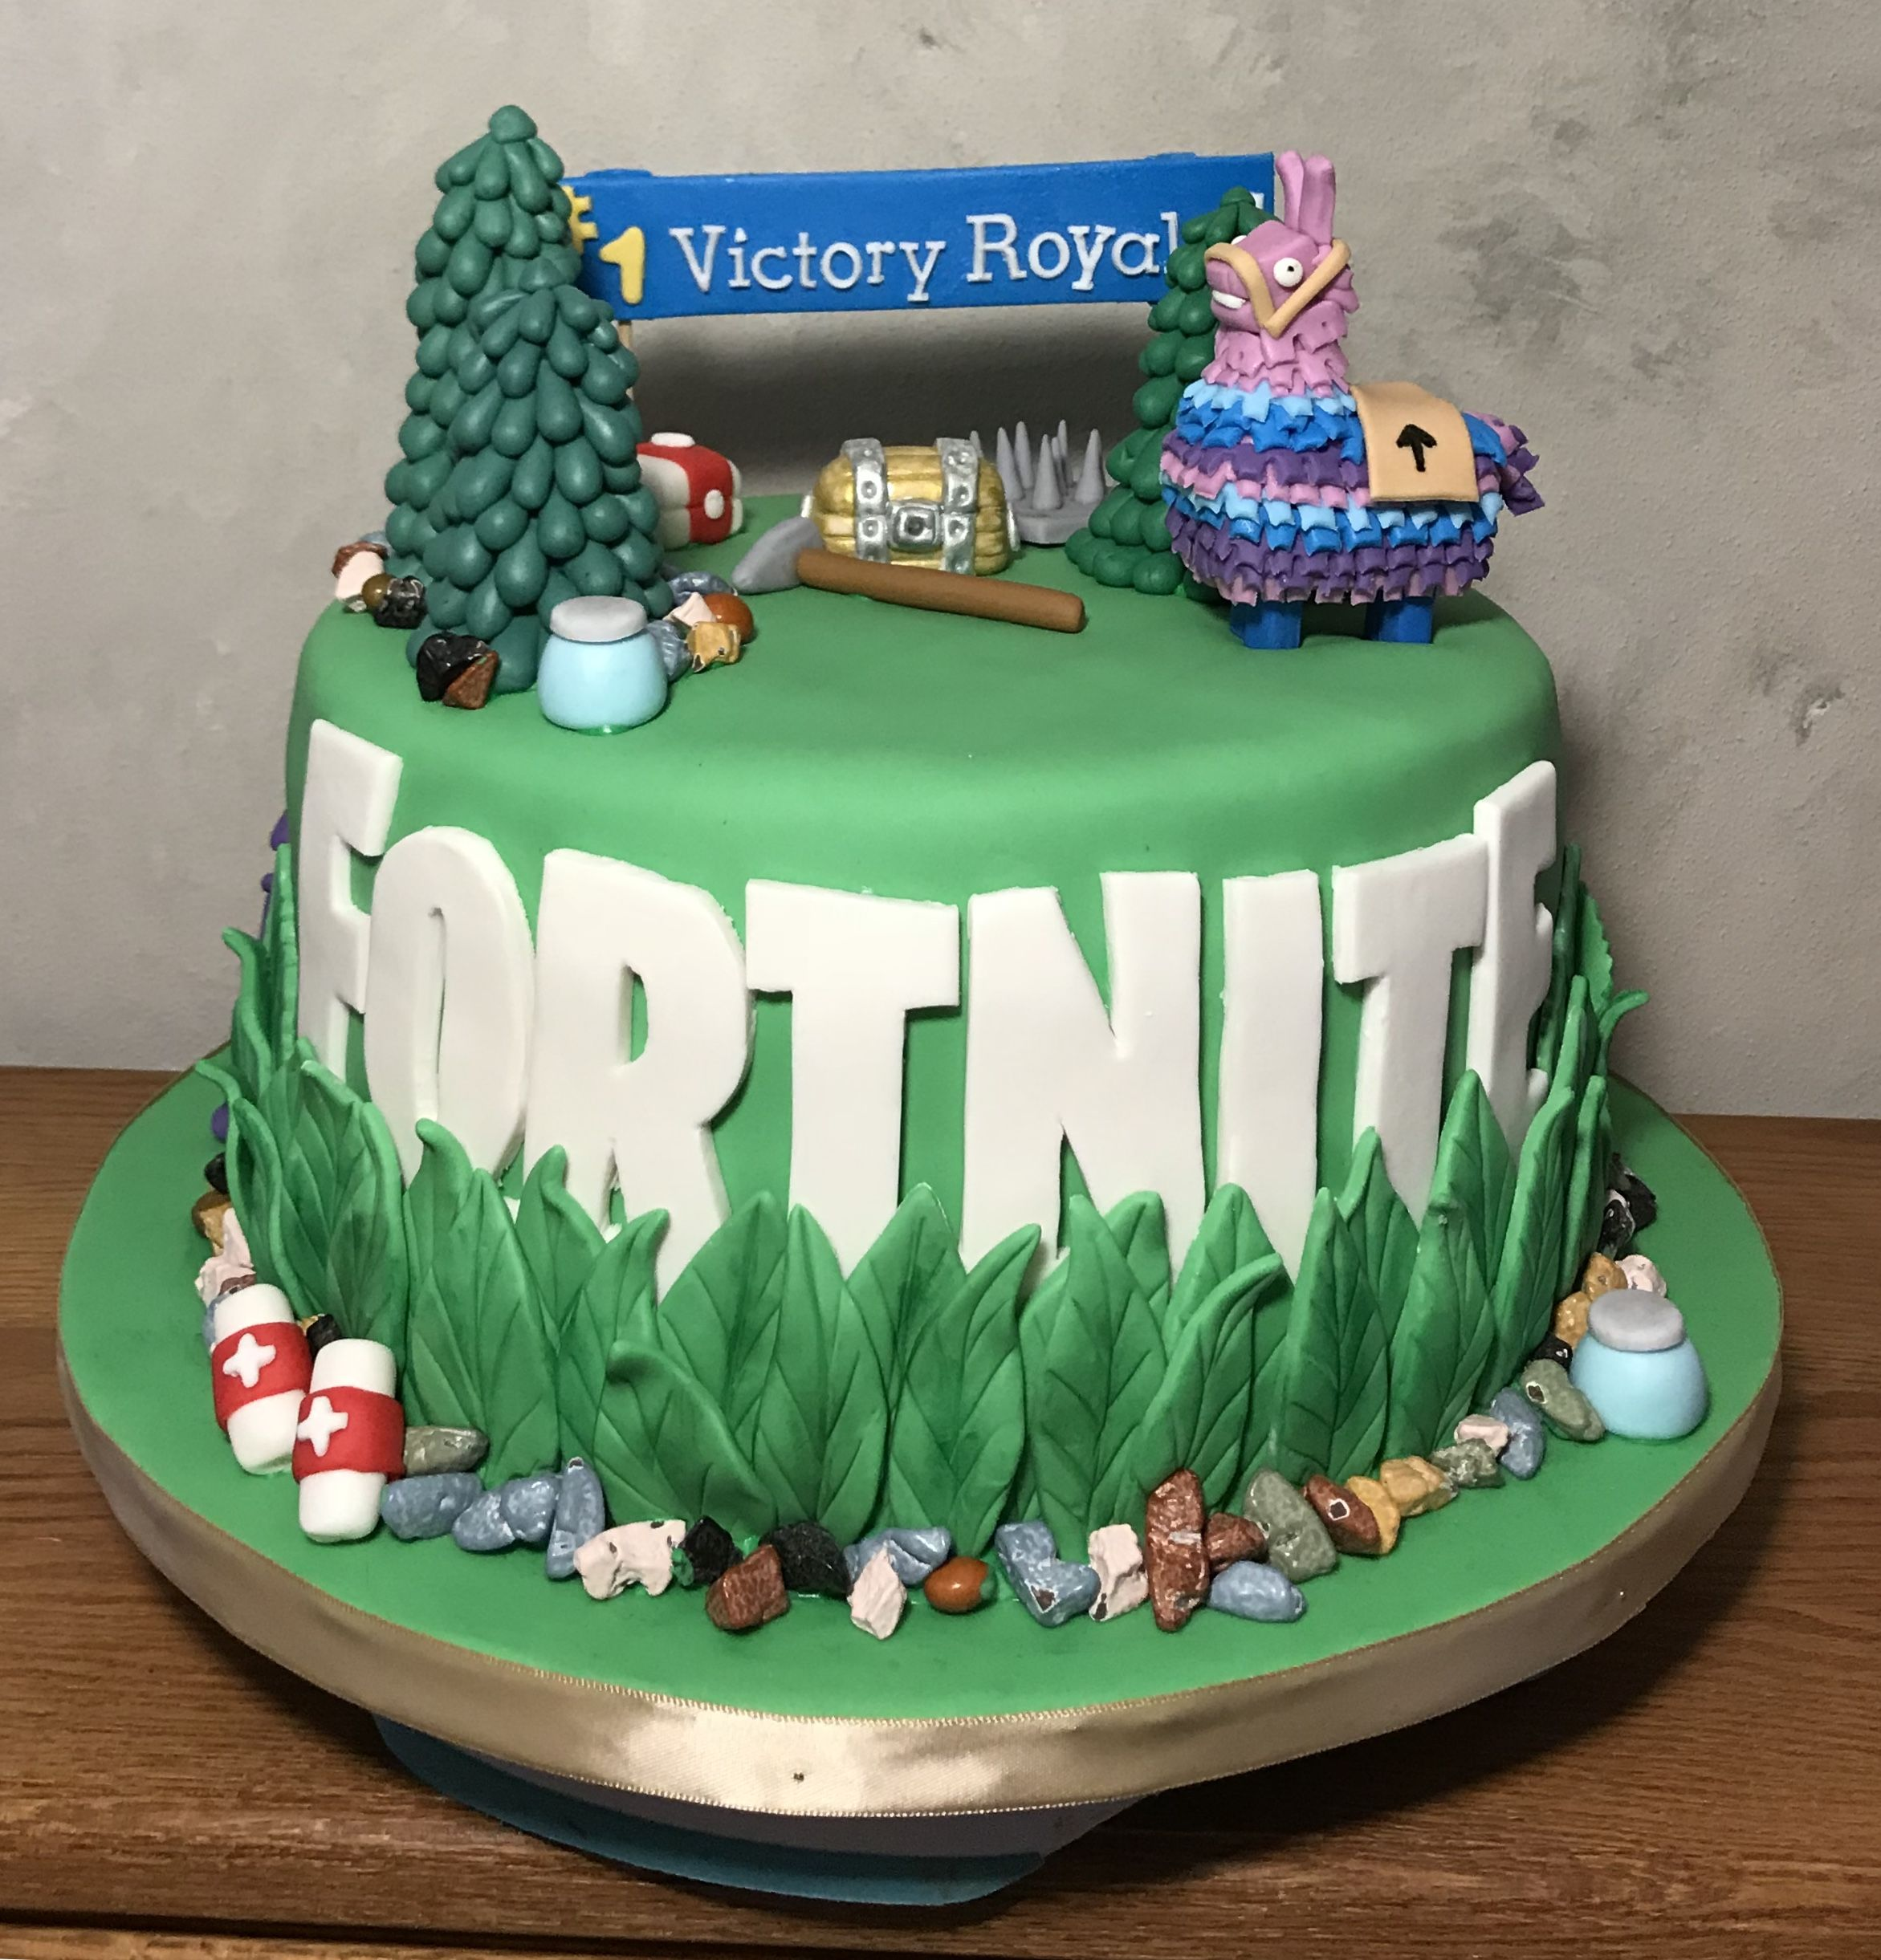 #Fortnite cake | Boy birthday cake, 10 birthday cake, Cake